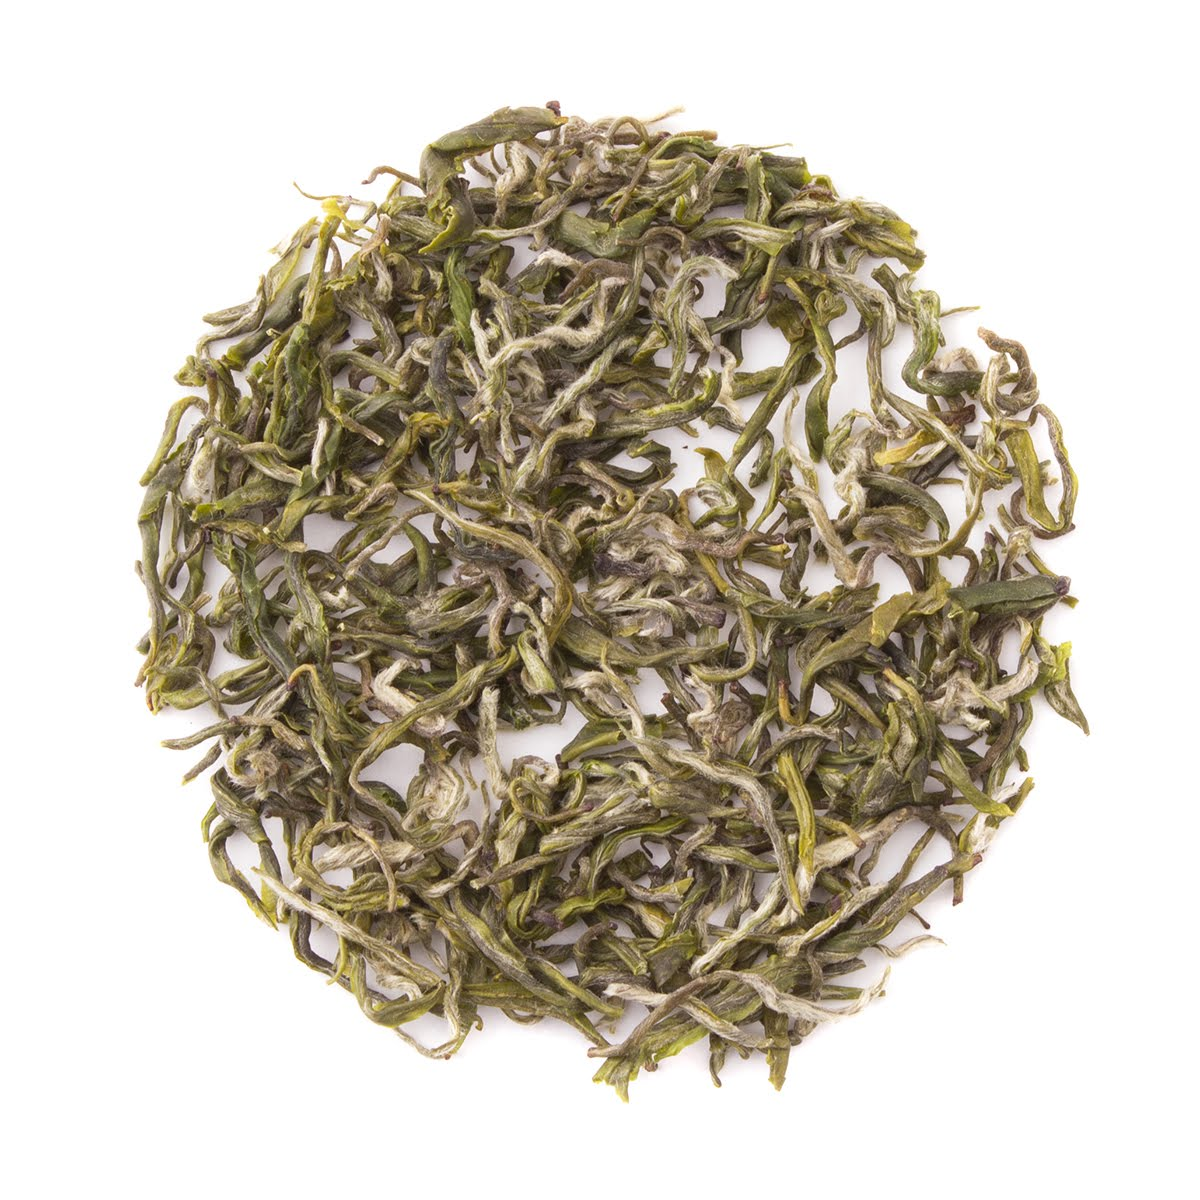 Loose Leaf Green Tea - Organic Green Tea - Premium Green Tea - Wholesale Loose Leaf Green Tea - Heavenly Tea Leaves